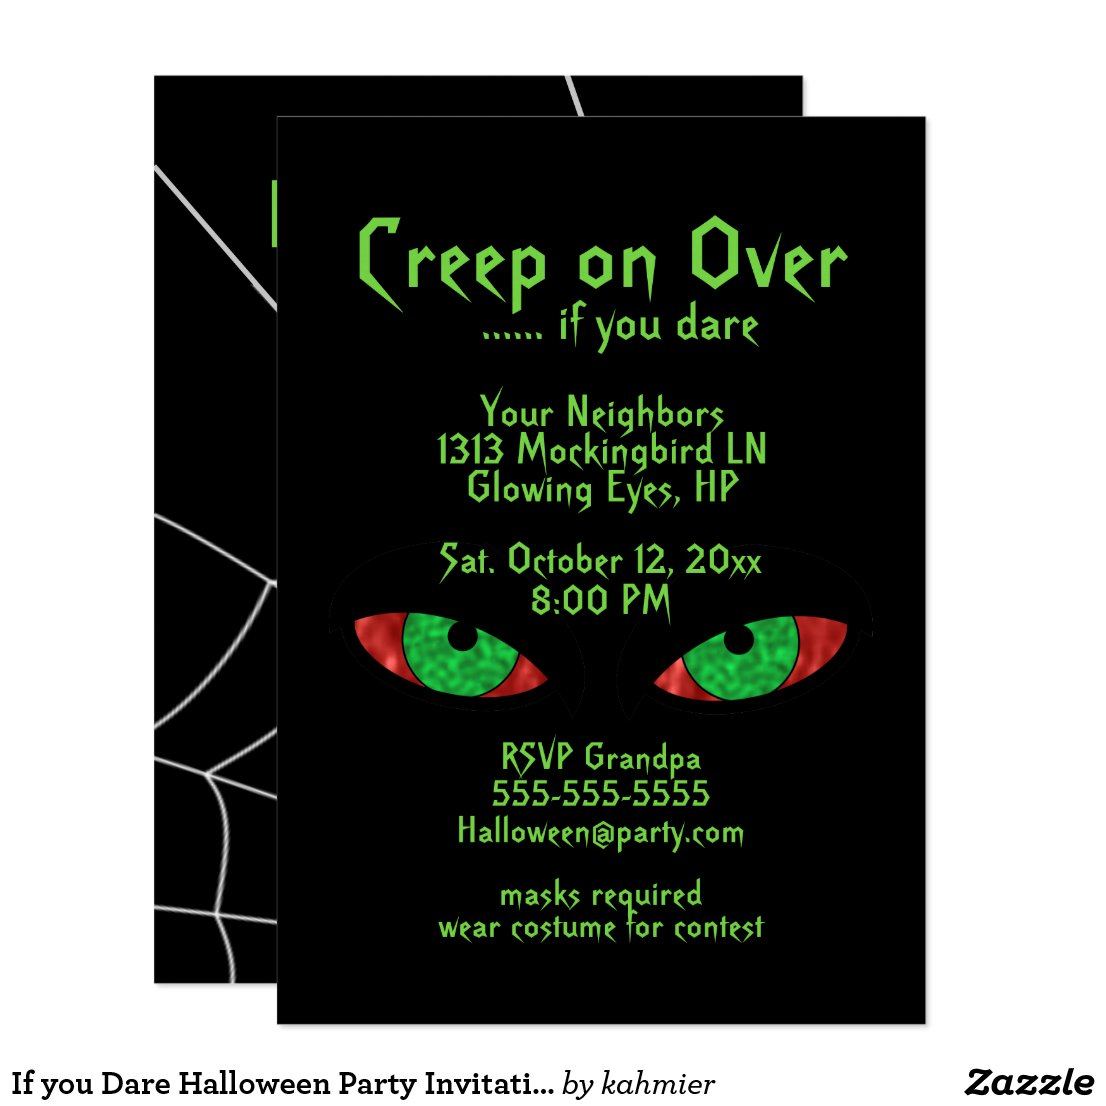 If you Dare Halloween Party Invitations